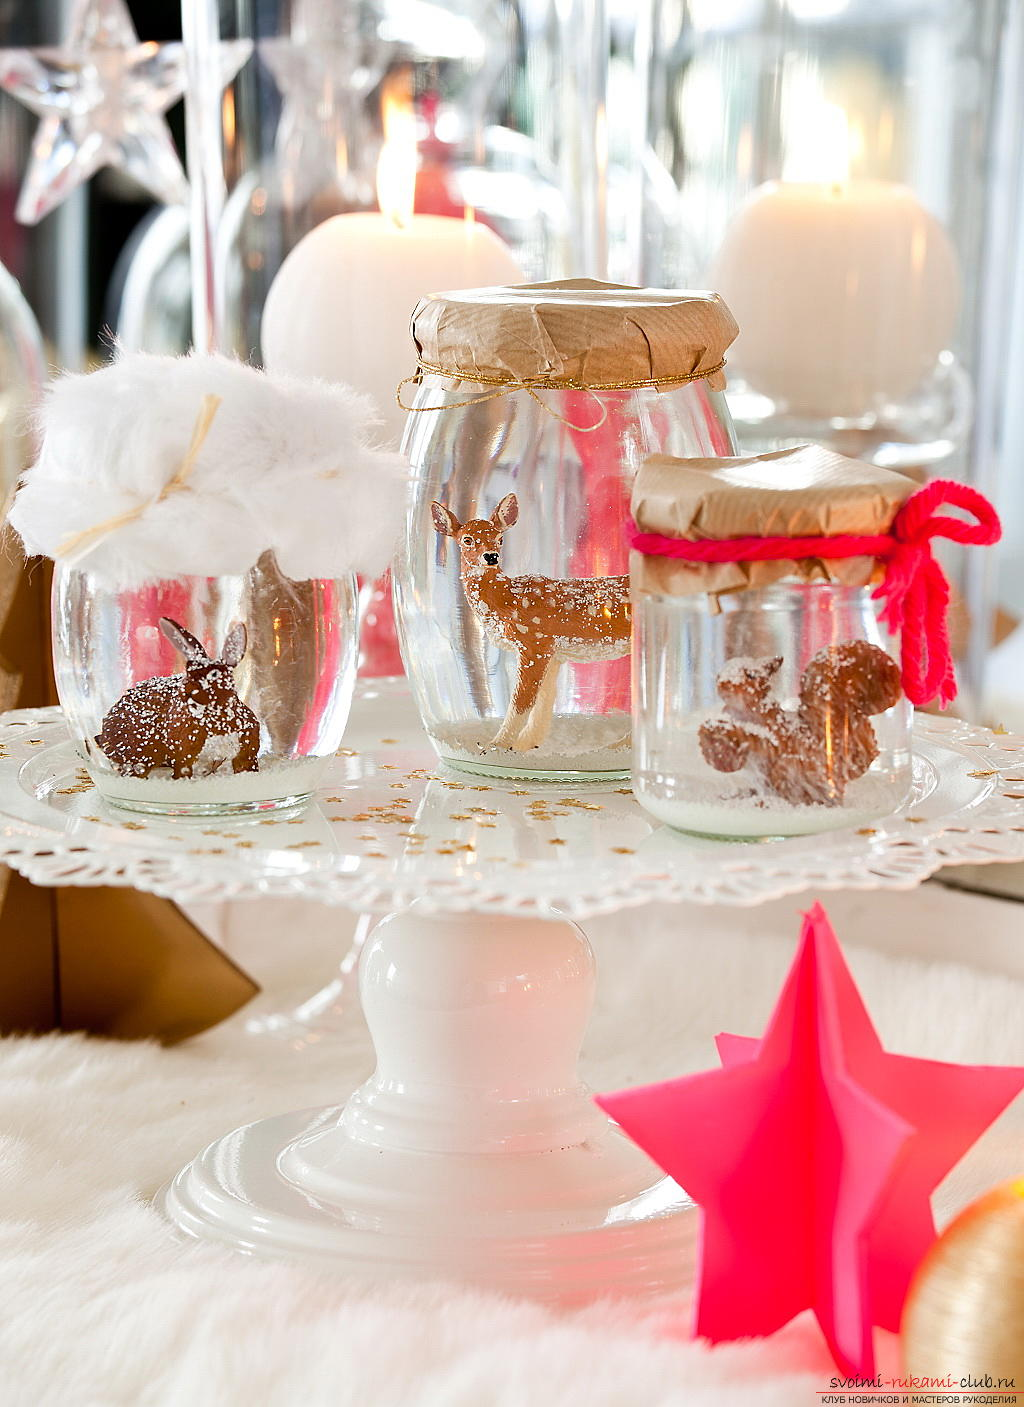 Serving of the New Year's table, tips and recommendations for making central compositions for the New Year's table, decorating chairs, instructions and photo examples .. Photo # 4